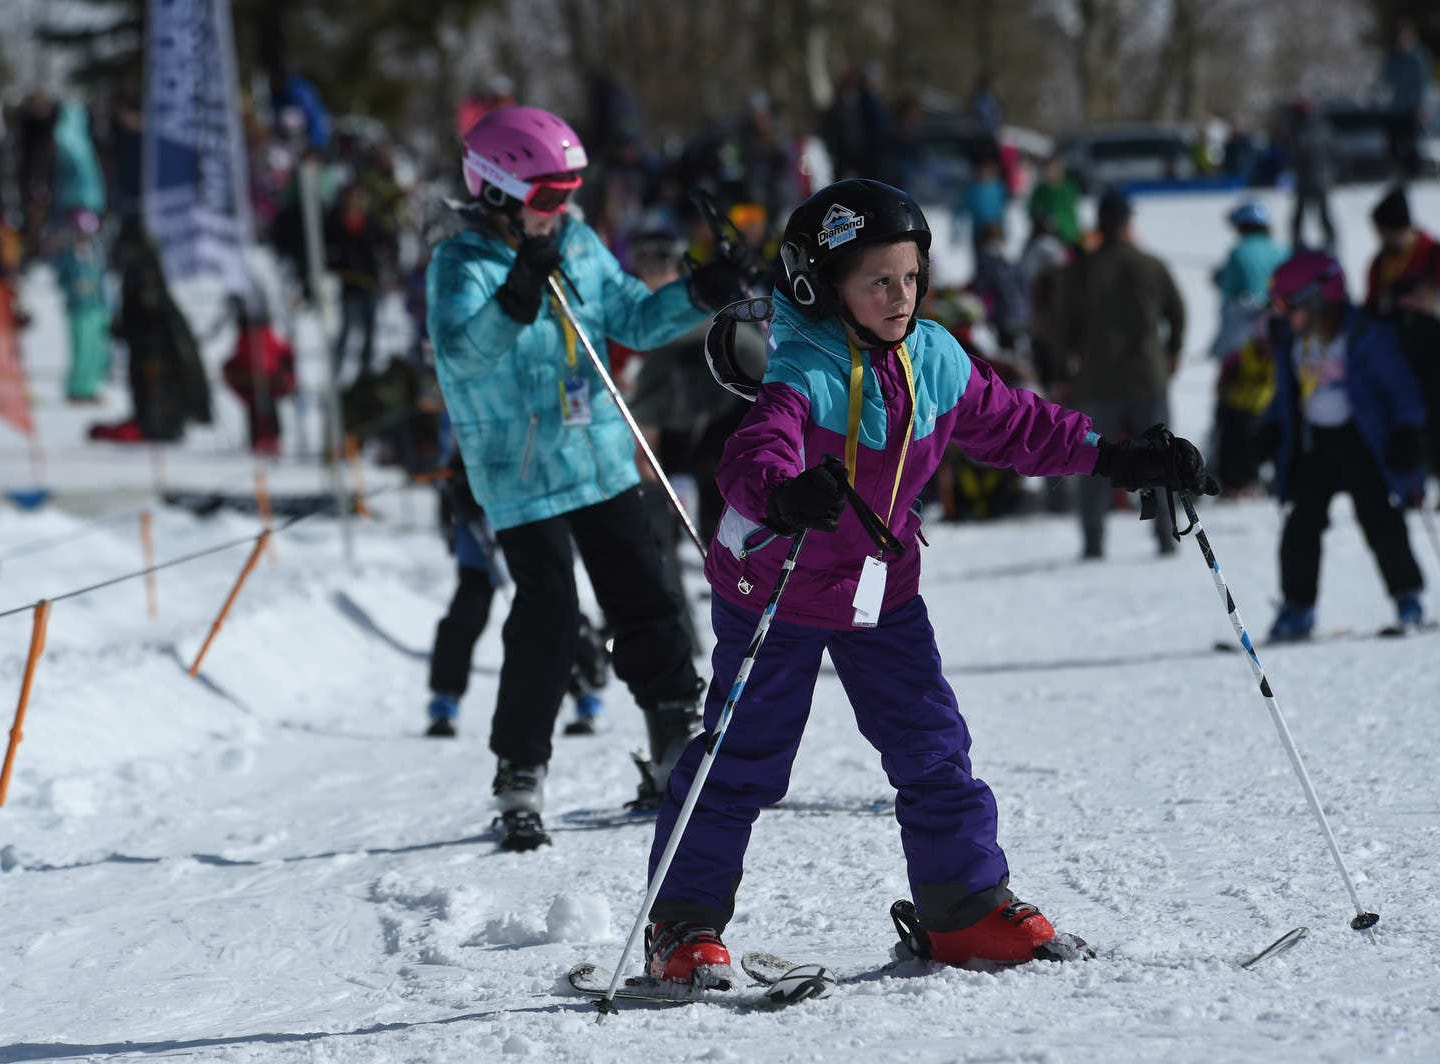 Opening day for the Sky Tavern Jr. Ski Program near Reno on Jan. 26, 2019.